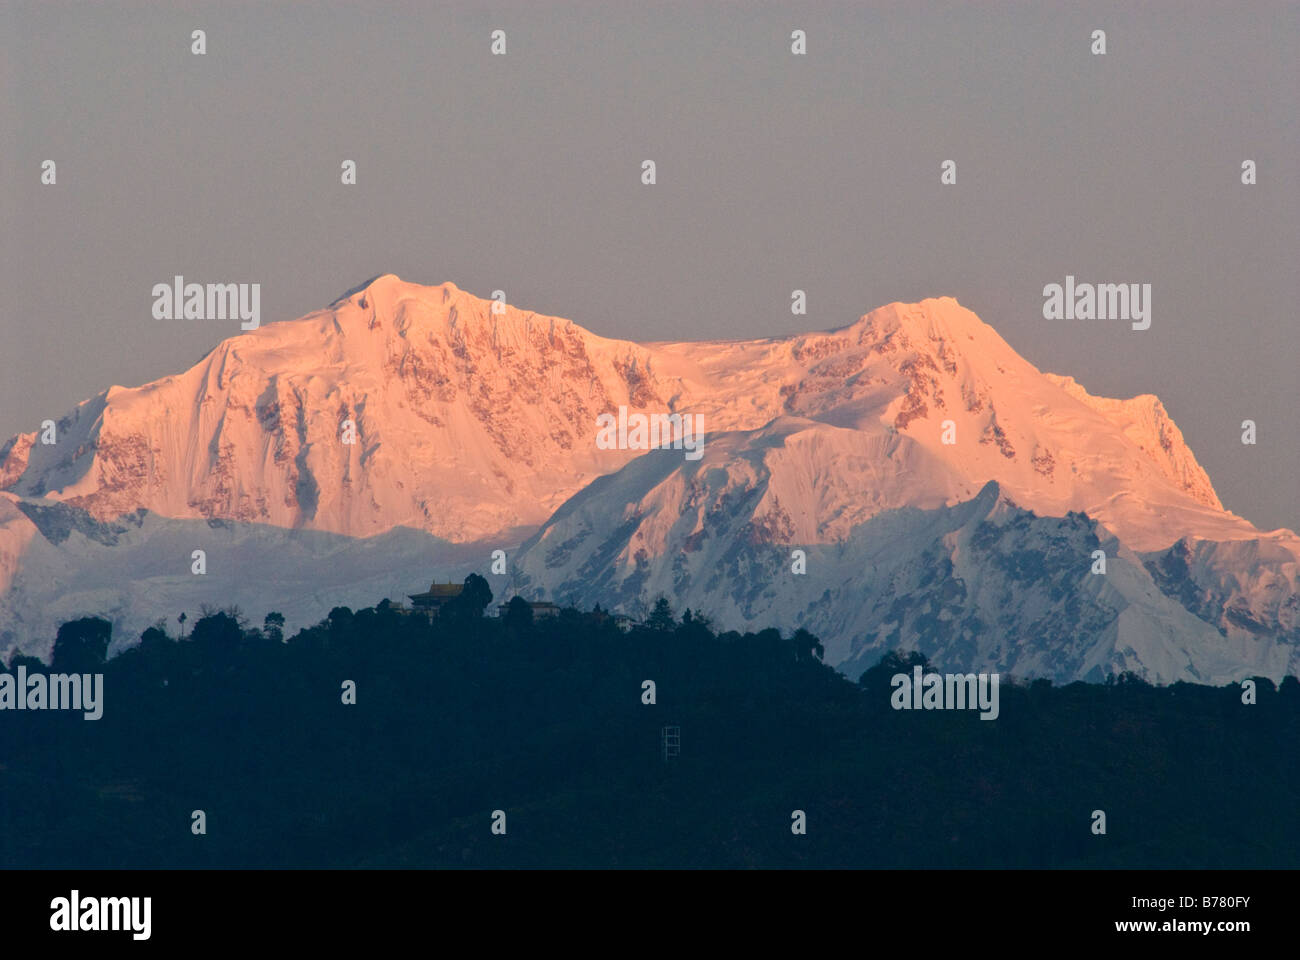 Peaks of the Kangchenjunga mountain range, Sikkim, at dawn. Pemayangtse monastery can be seen on the hilltop in - Stock Image